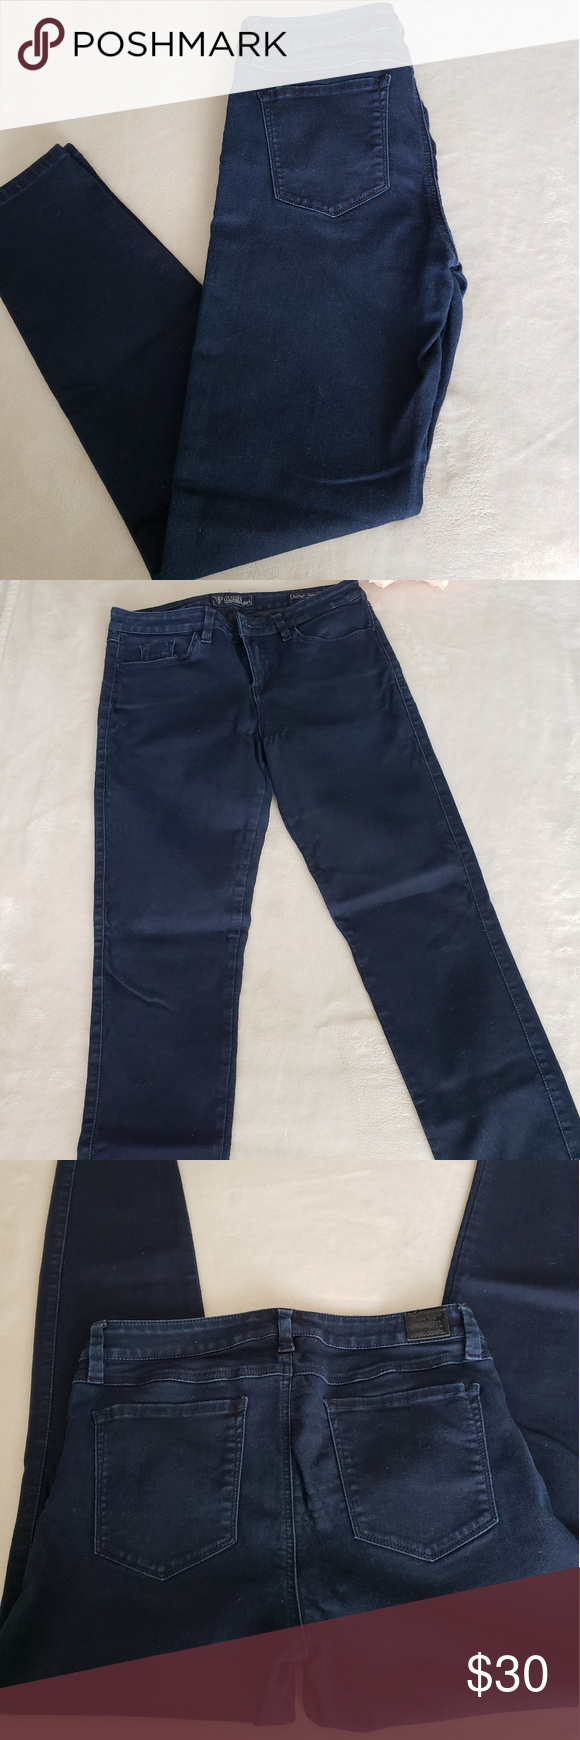 670e9886aad7f Guess Brittney Legging Jeans Guess Britney Mid-rise legging fit. Ultra  skinny fit,